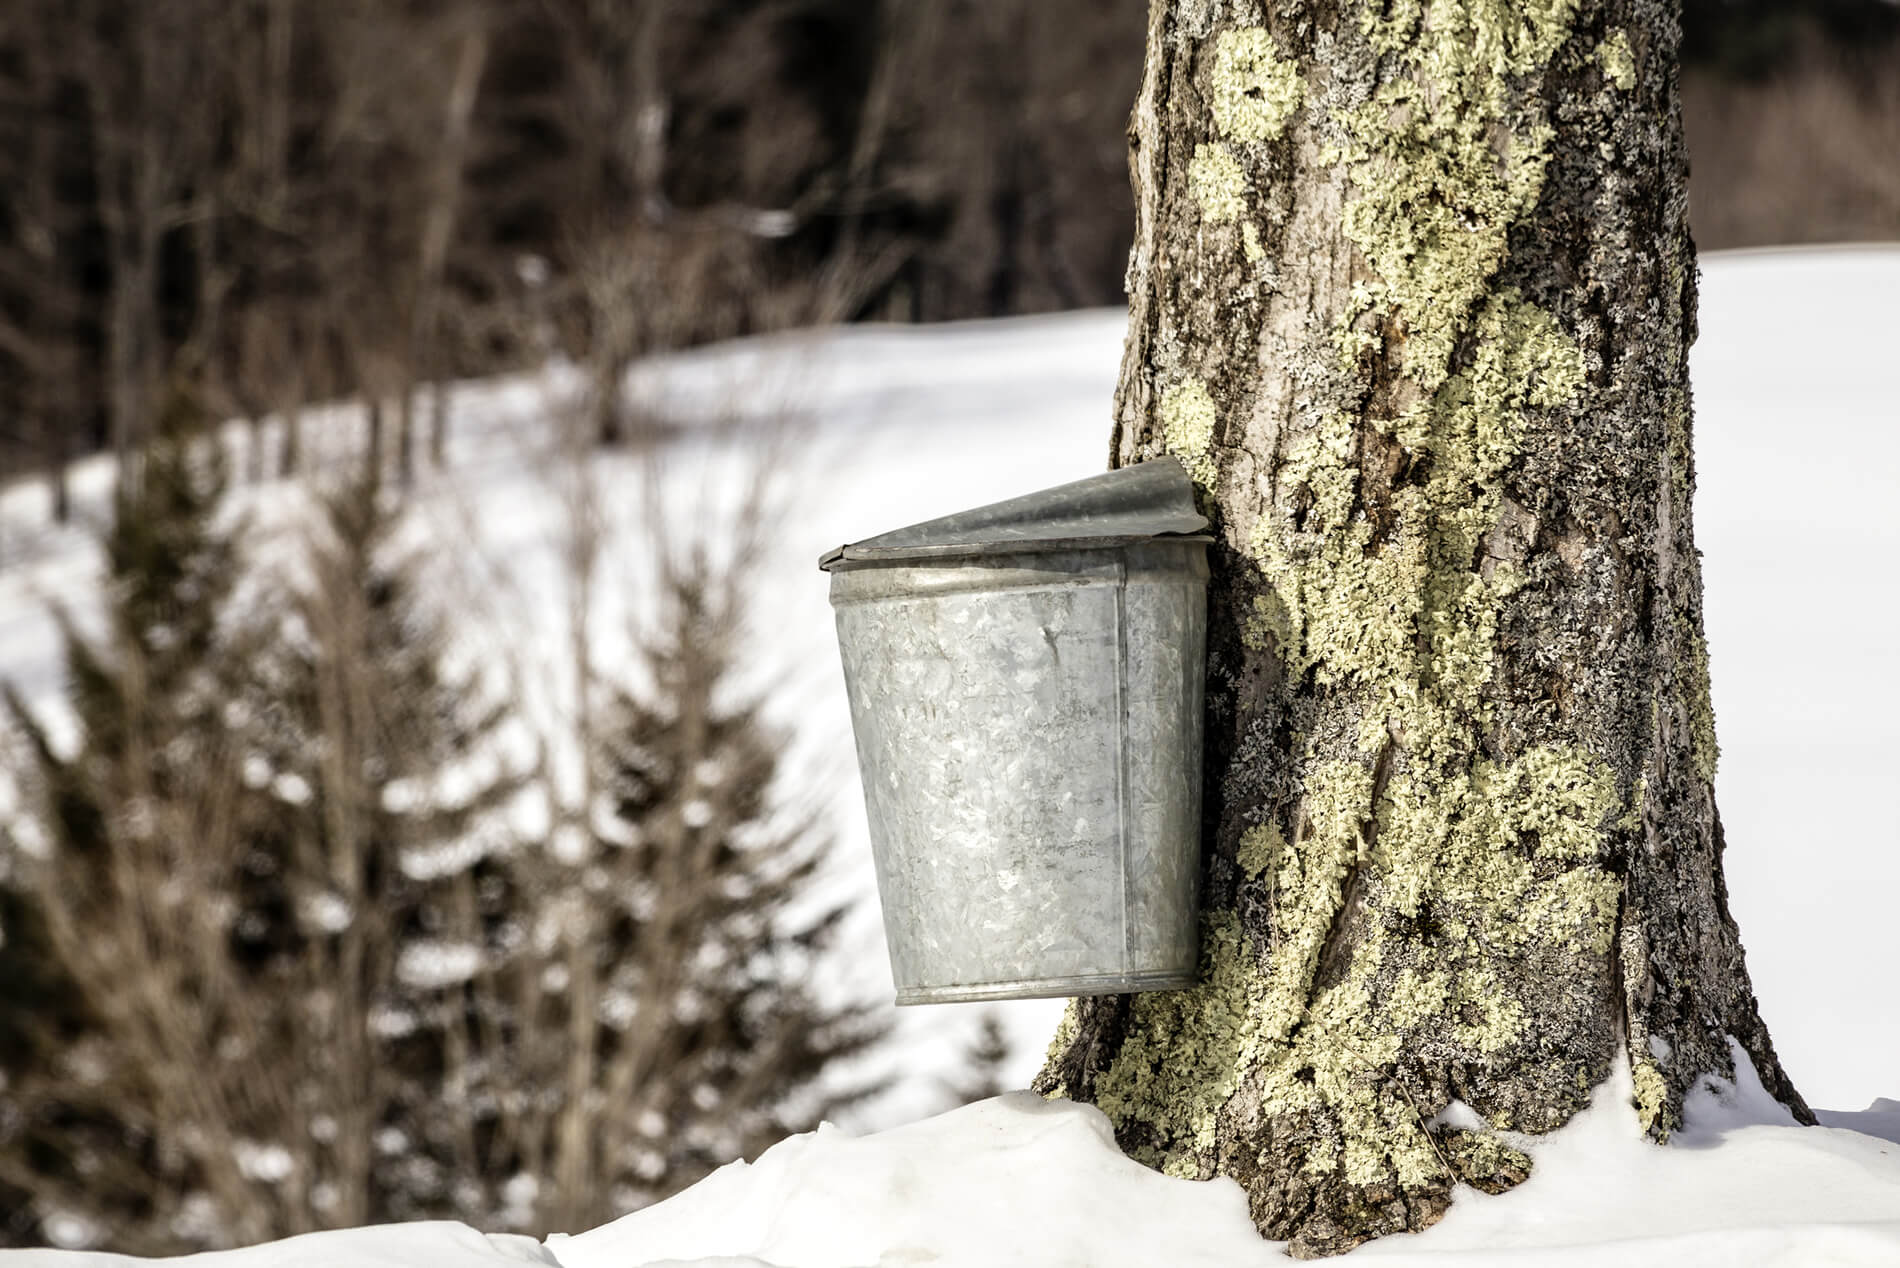 Maple tree with a silver sap bucket during winter with white snow covered ground.